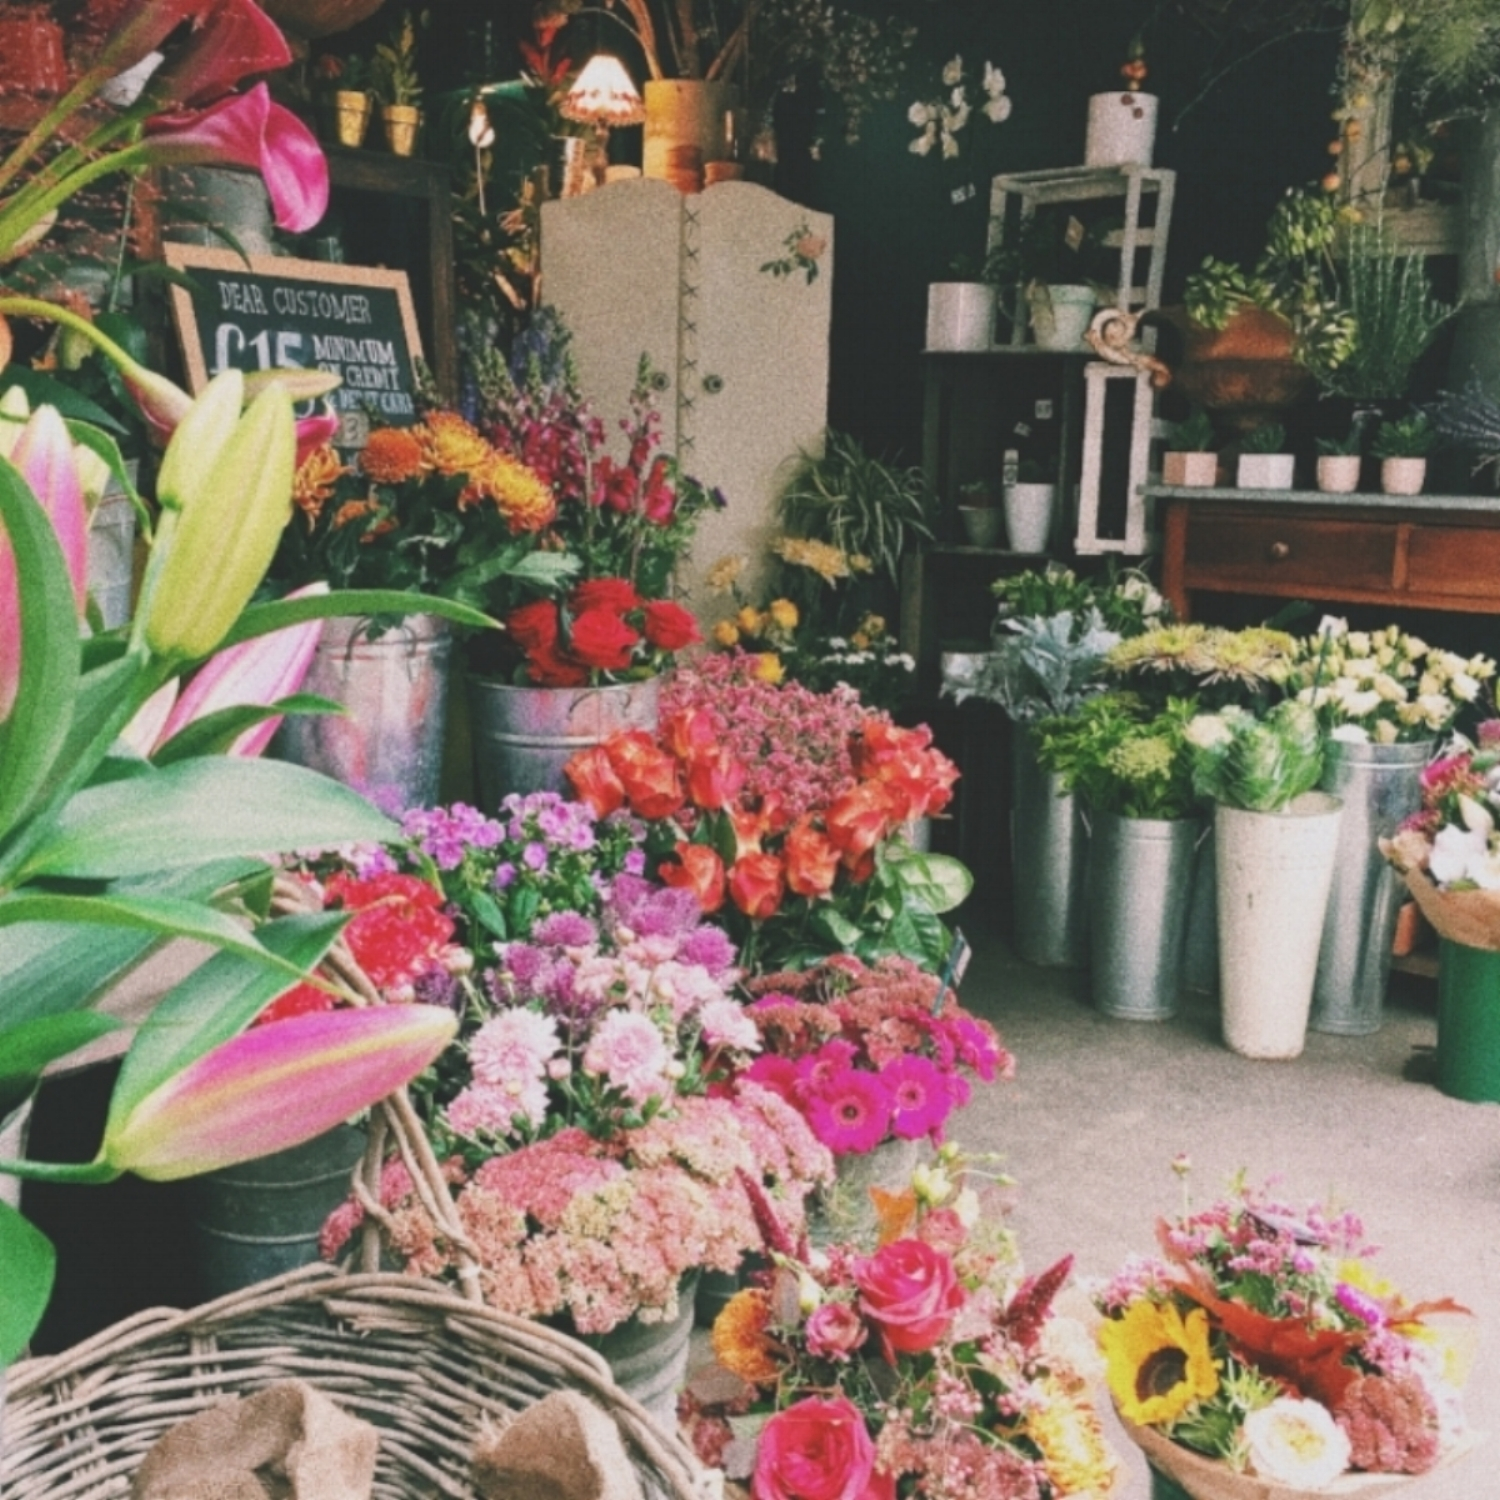 A beautiful flower shop in Borough Market